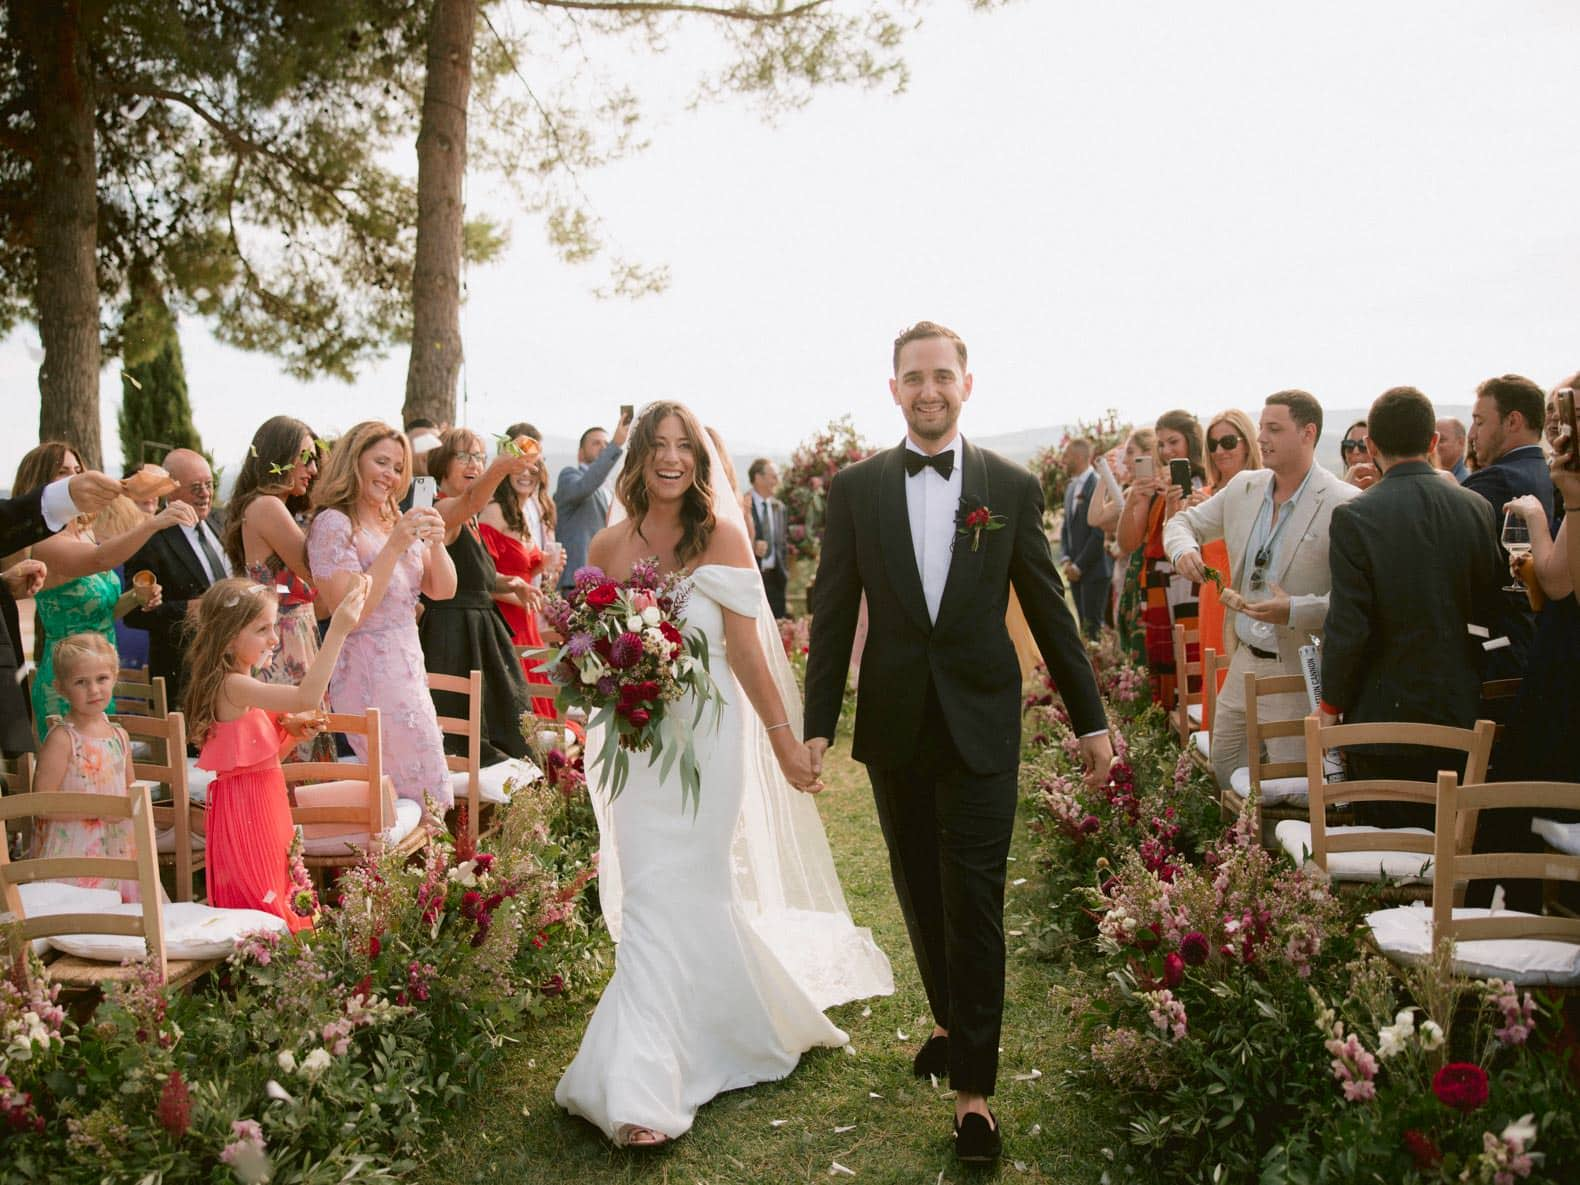 just married - the recessional